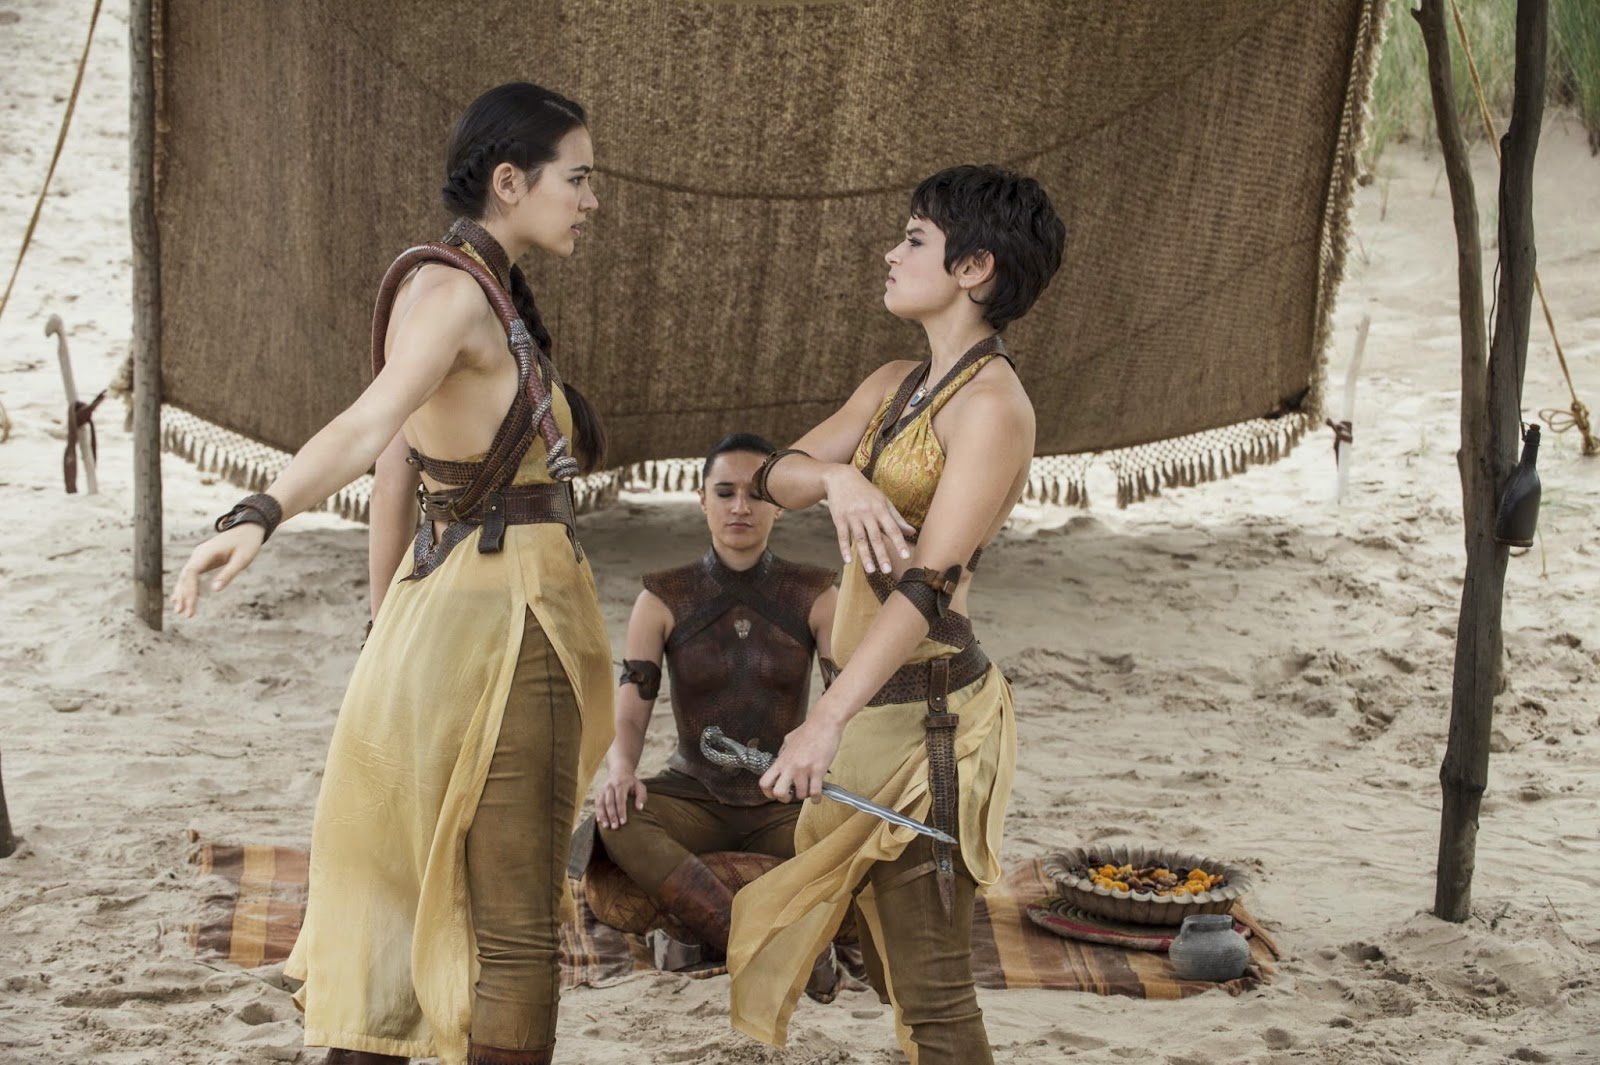 Oh, Dorne...we had such high hopes for you and the Sand Snakes.